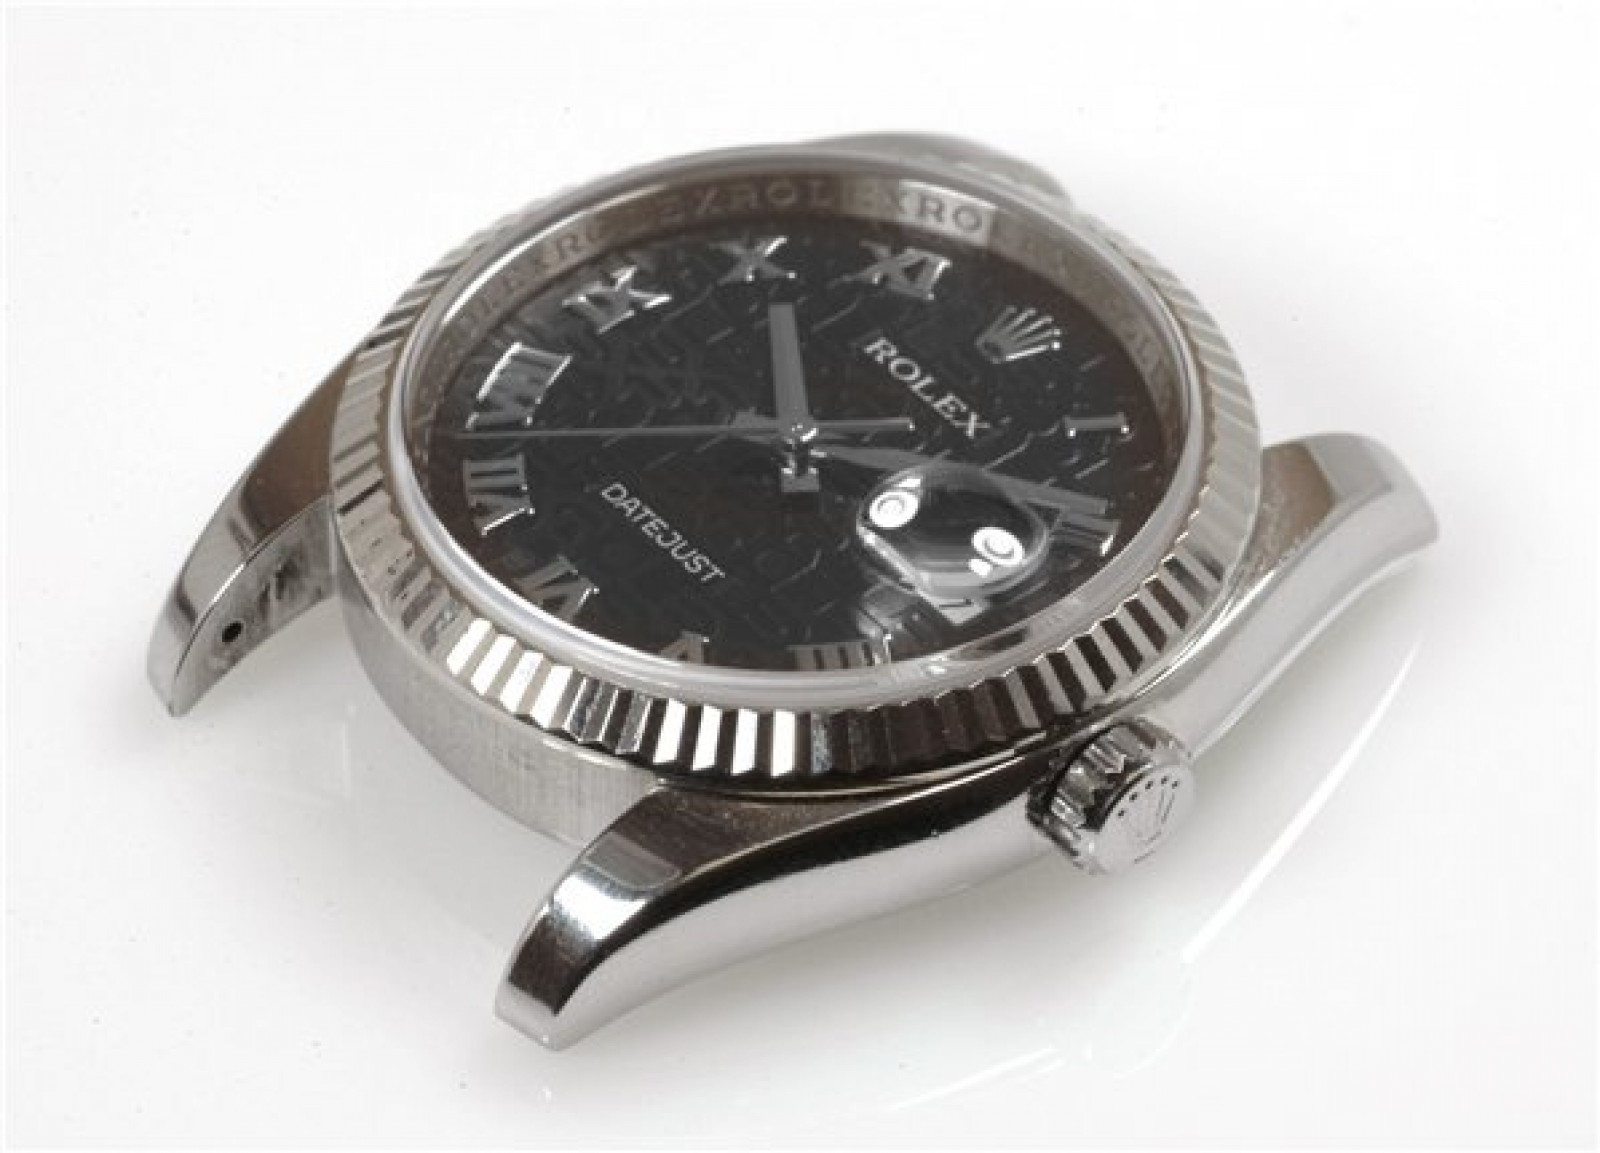 Rolex Datejust 116234 Steel with Black Dial